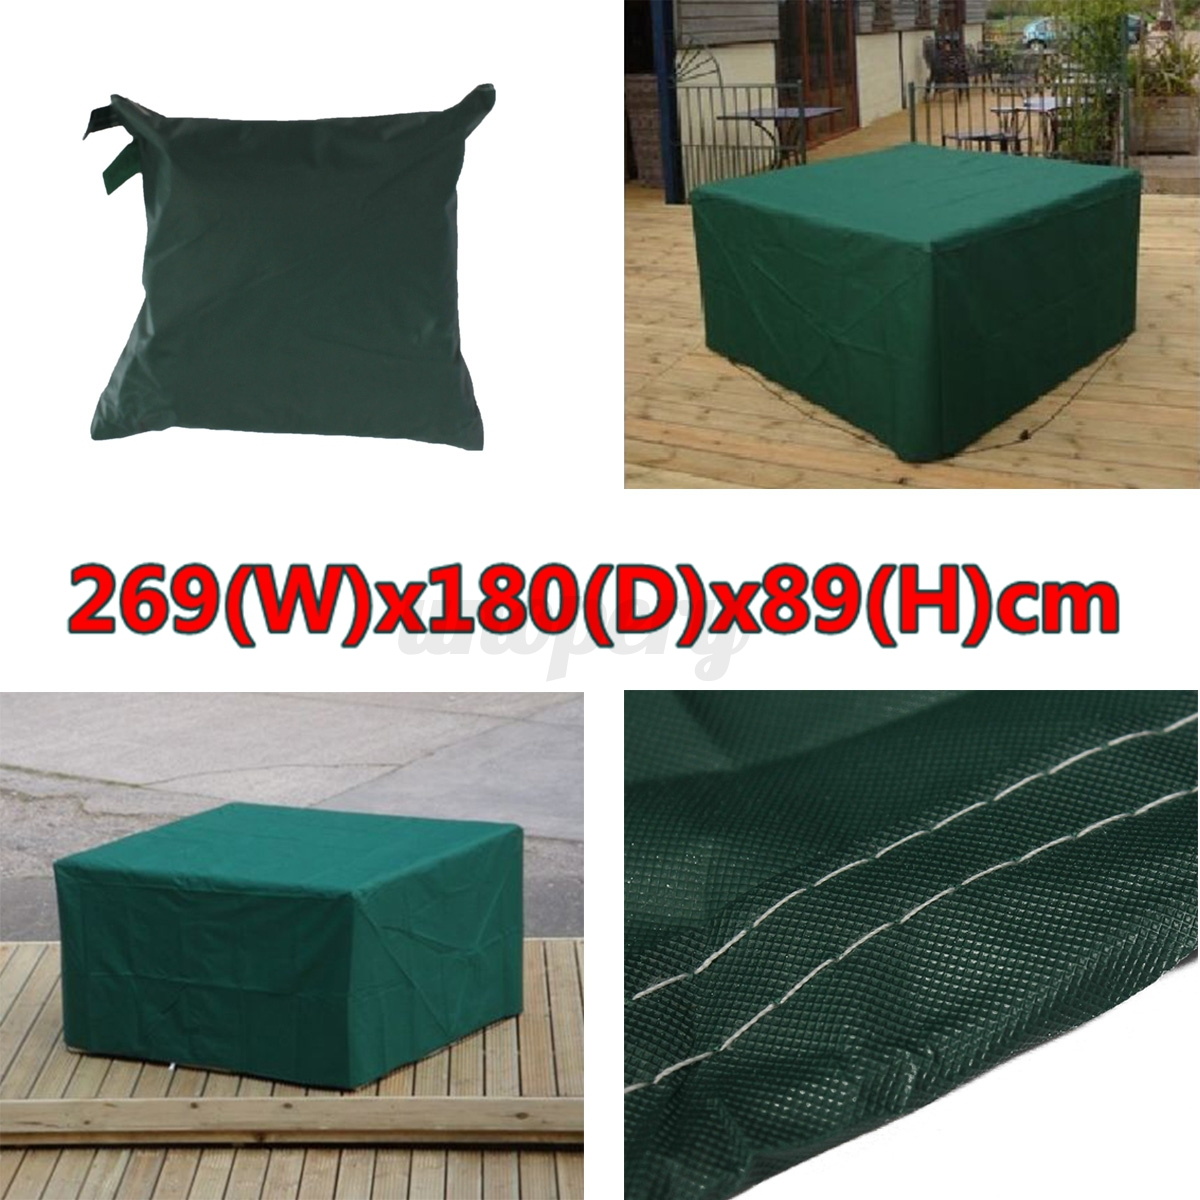 9 Size Garden Furniture Outdoor Patio Table Chair Square Cover Waterproof 210